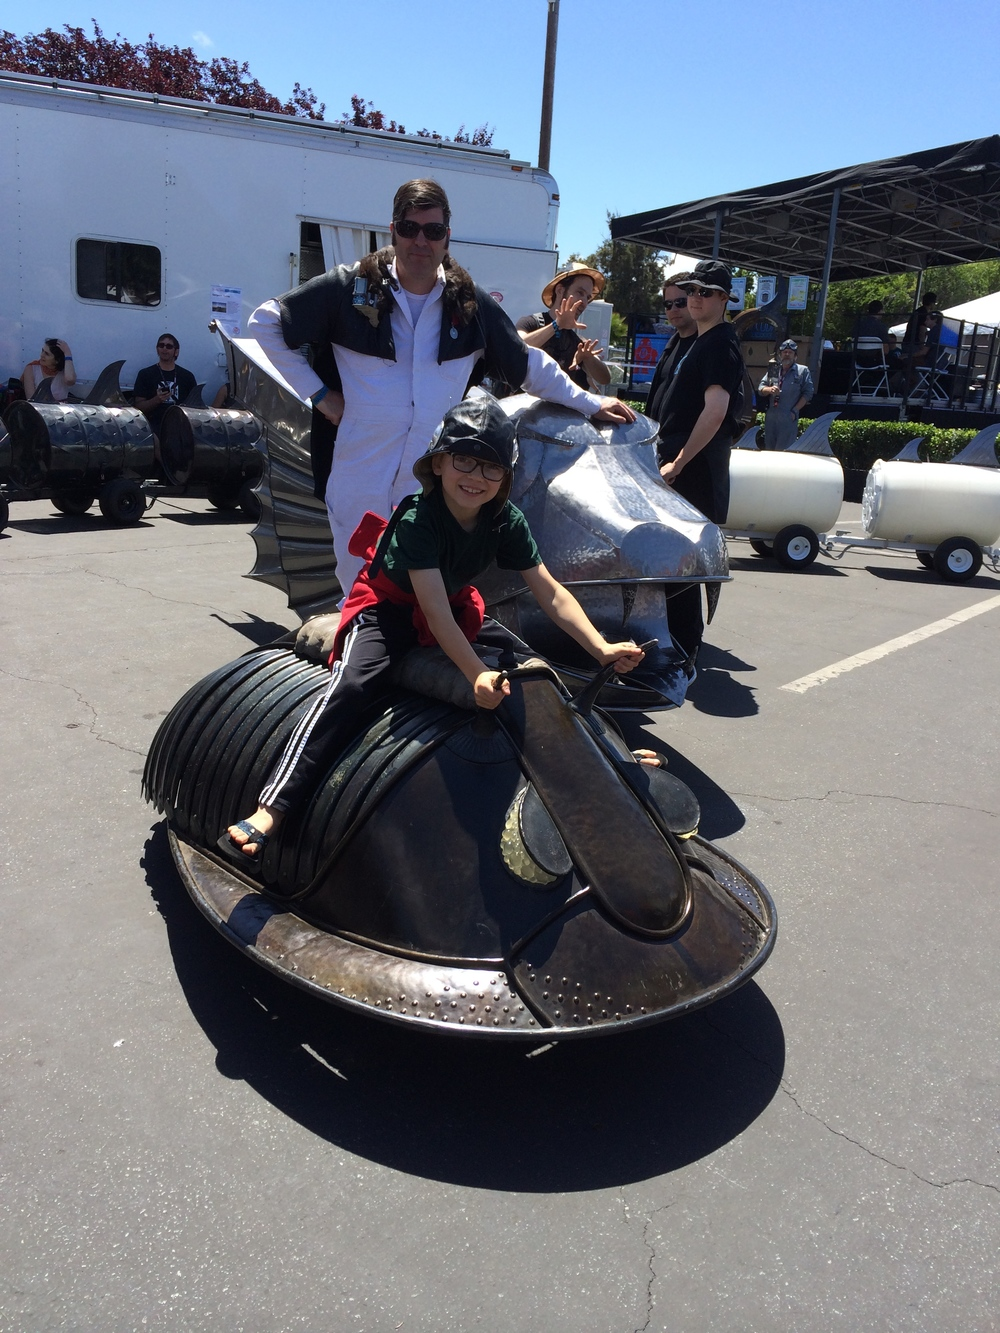 Jon Sarriugarte of Form & Reform let Elliot ride his electric trilobite (and wear his cool leather helmet)